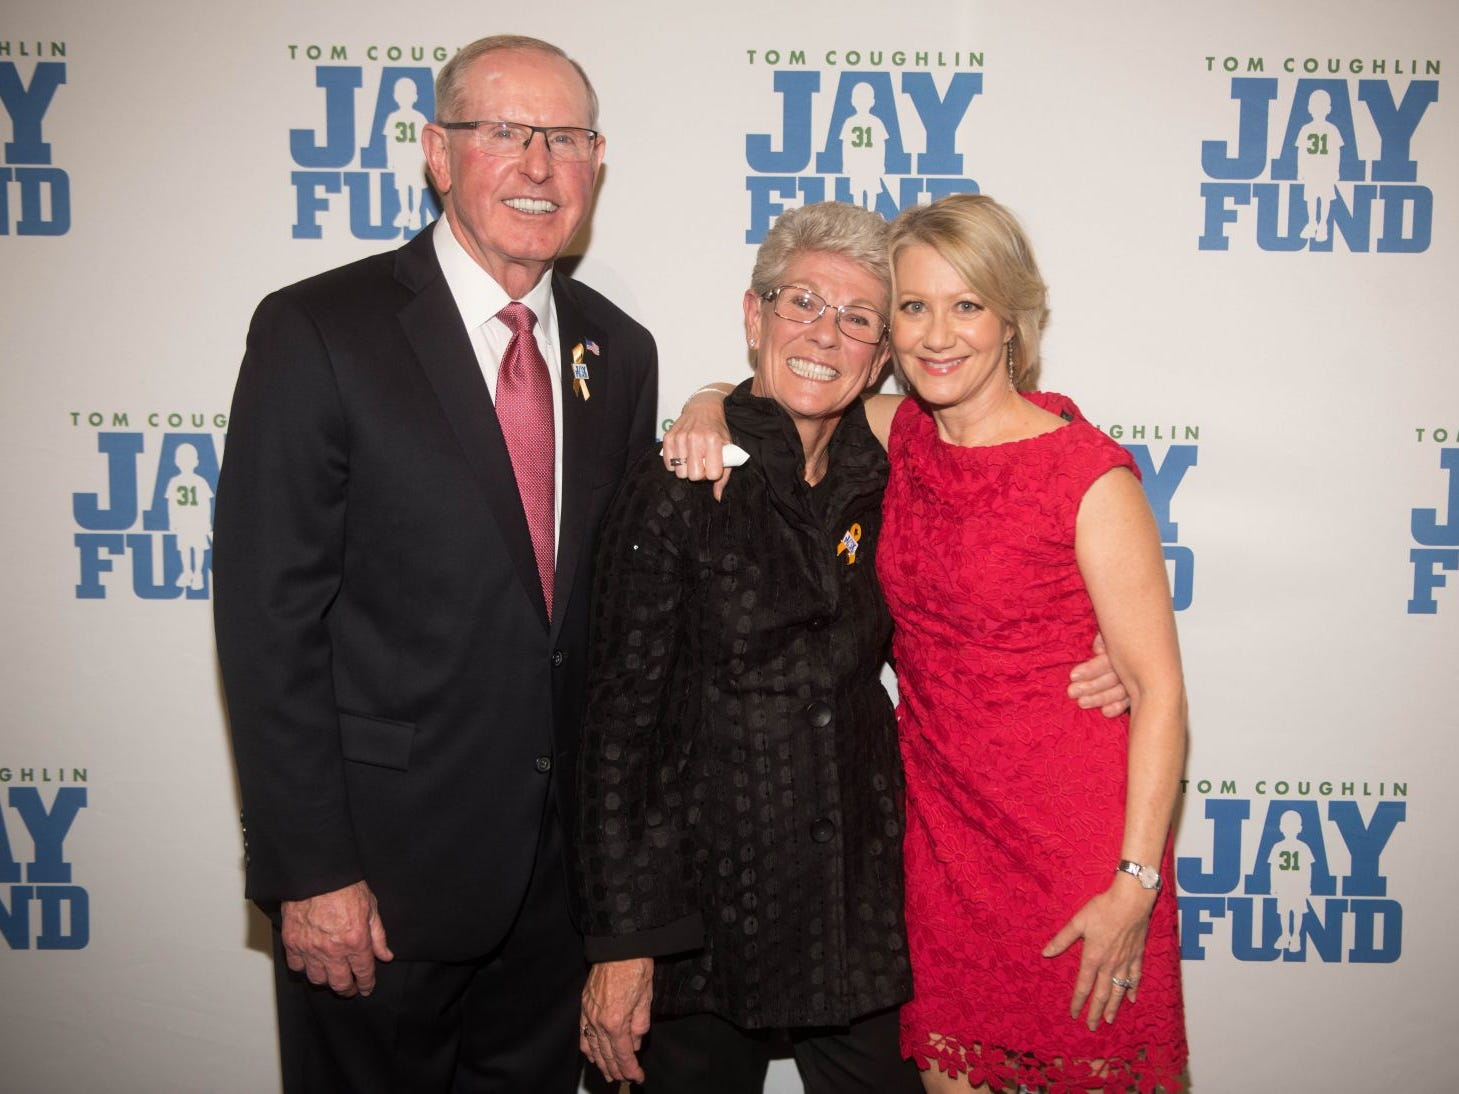 Tom Coughlin, Judy Coughlin and Andrea Kremer. The 14th annual Jay Fund Champions for Children Gala was held at Cipriani 42nd Street. 09/21/2018